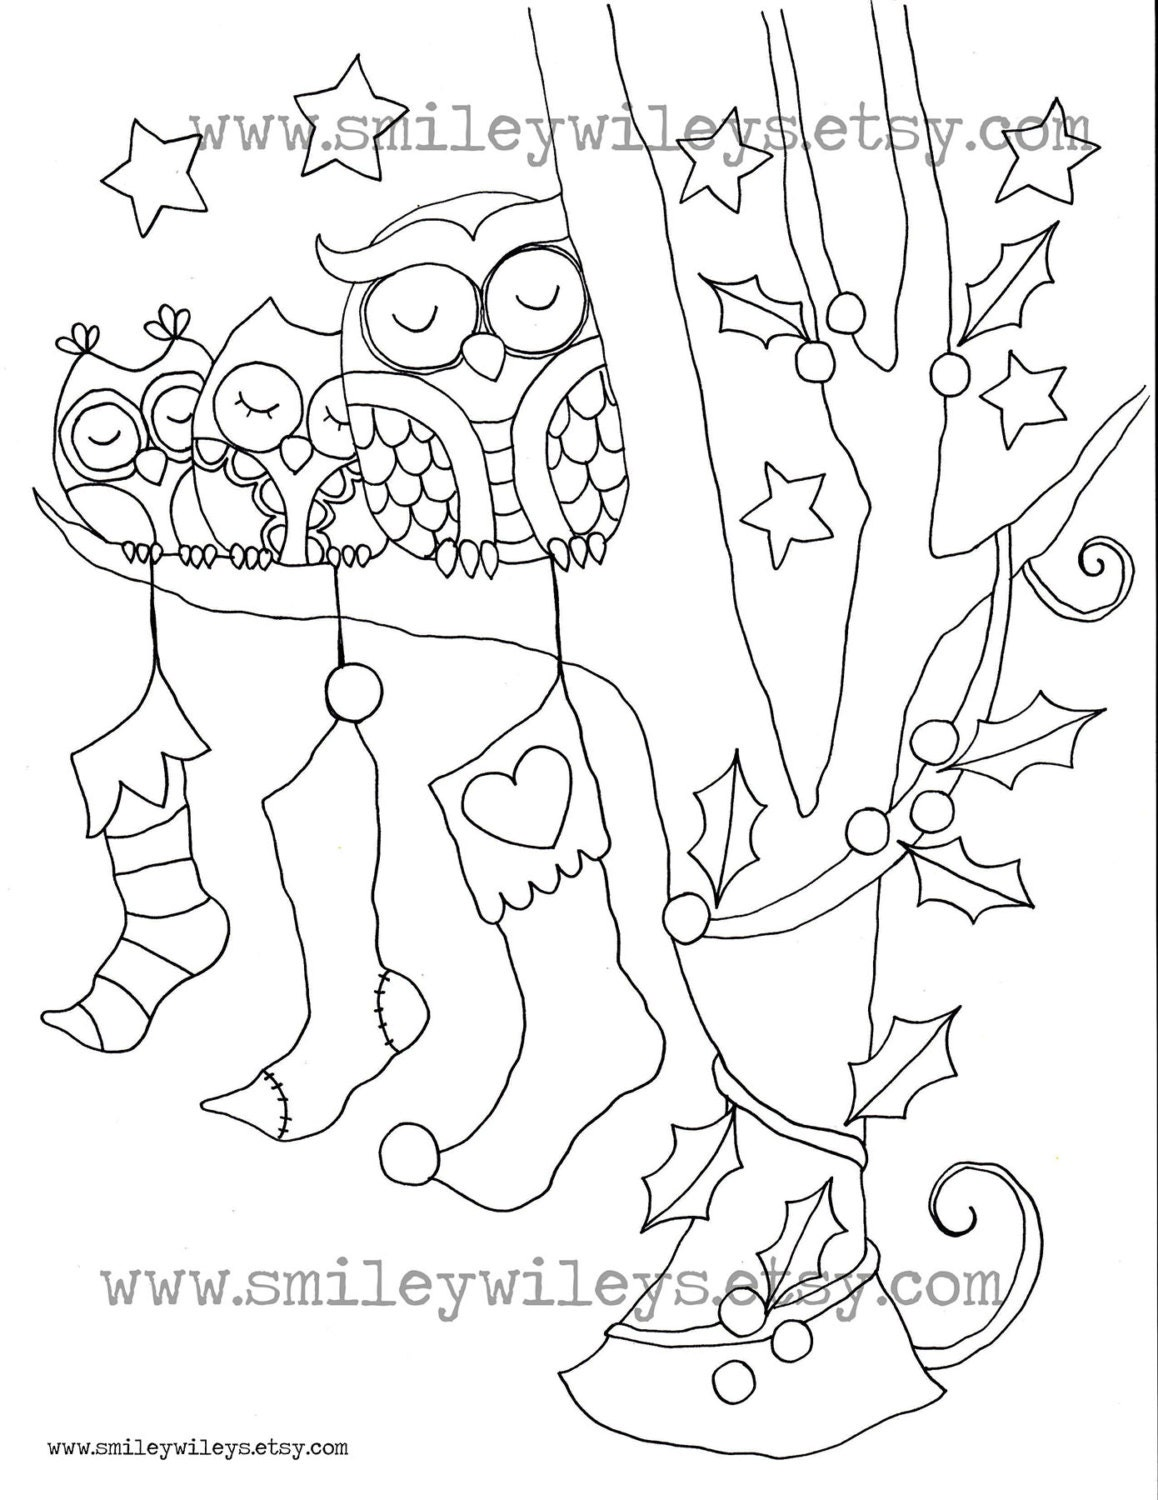 unavailable listing on etsy Owl Coloring Pages Christmas Color by Number  Christmas Owl Coloring Page